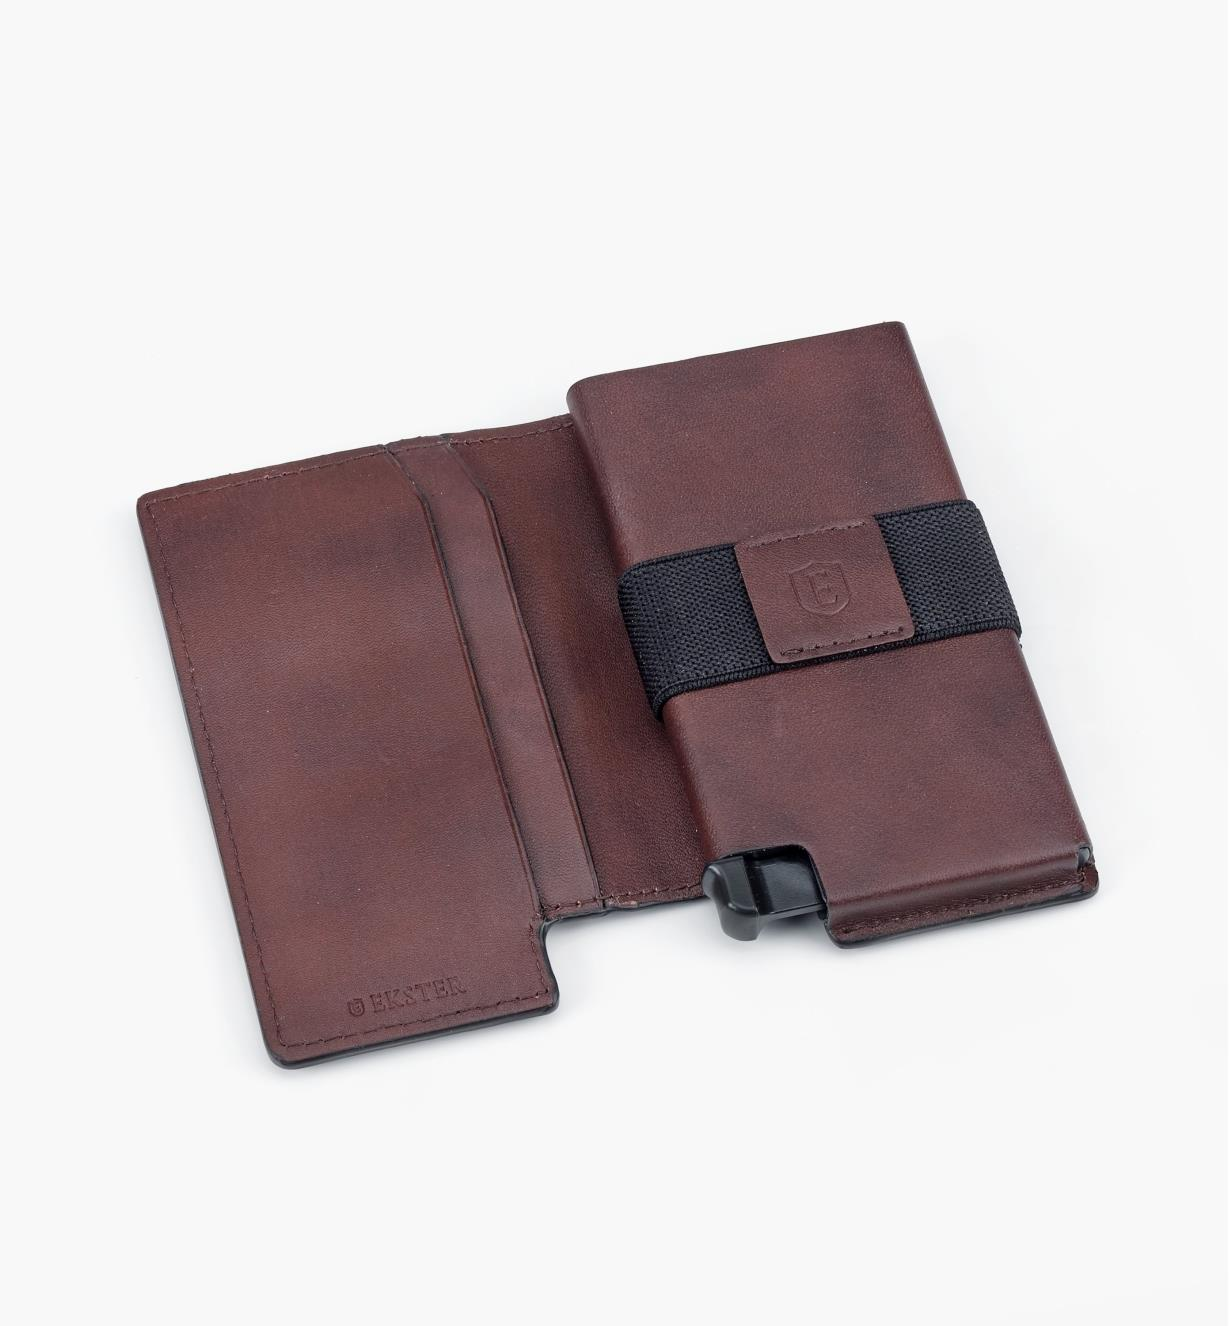 99W7715 - Parliament Wallet, Brown